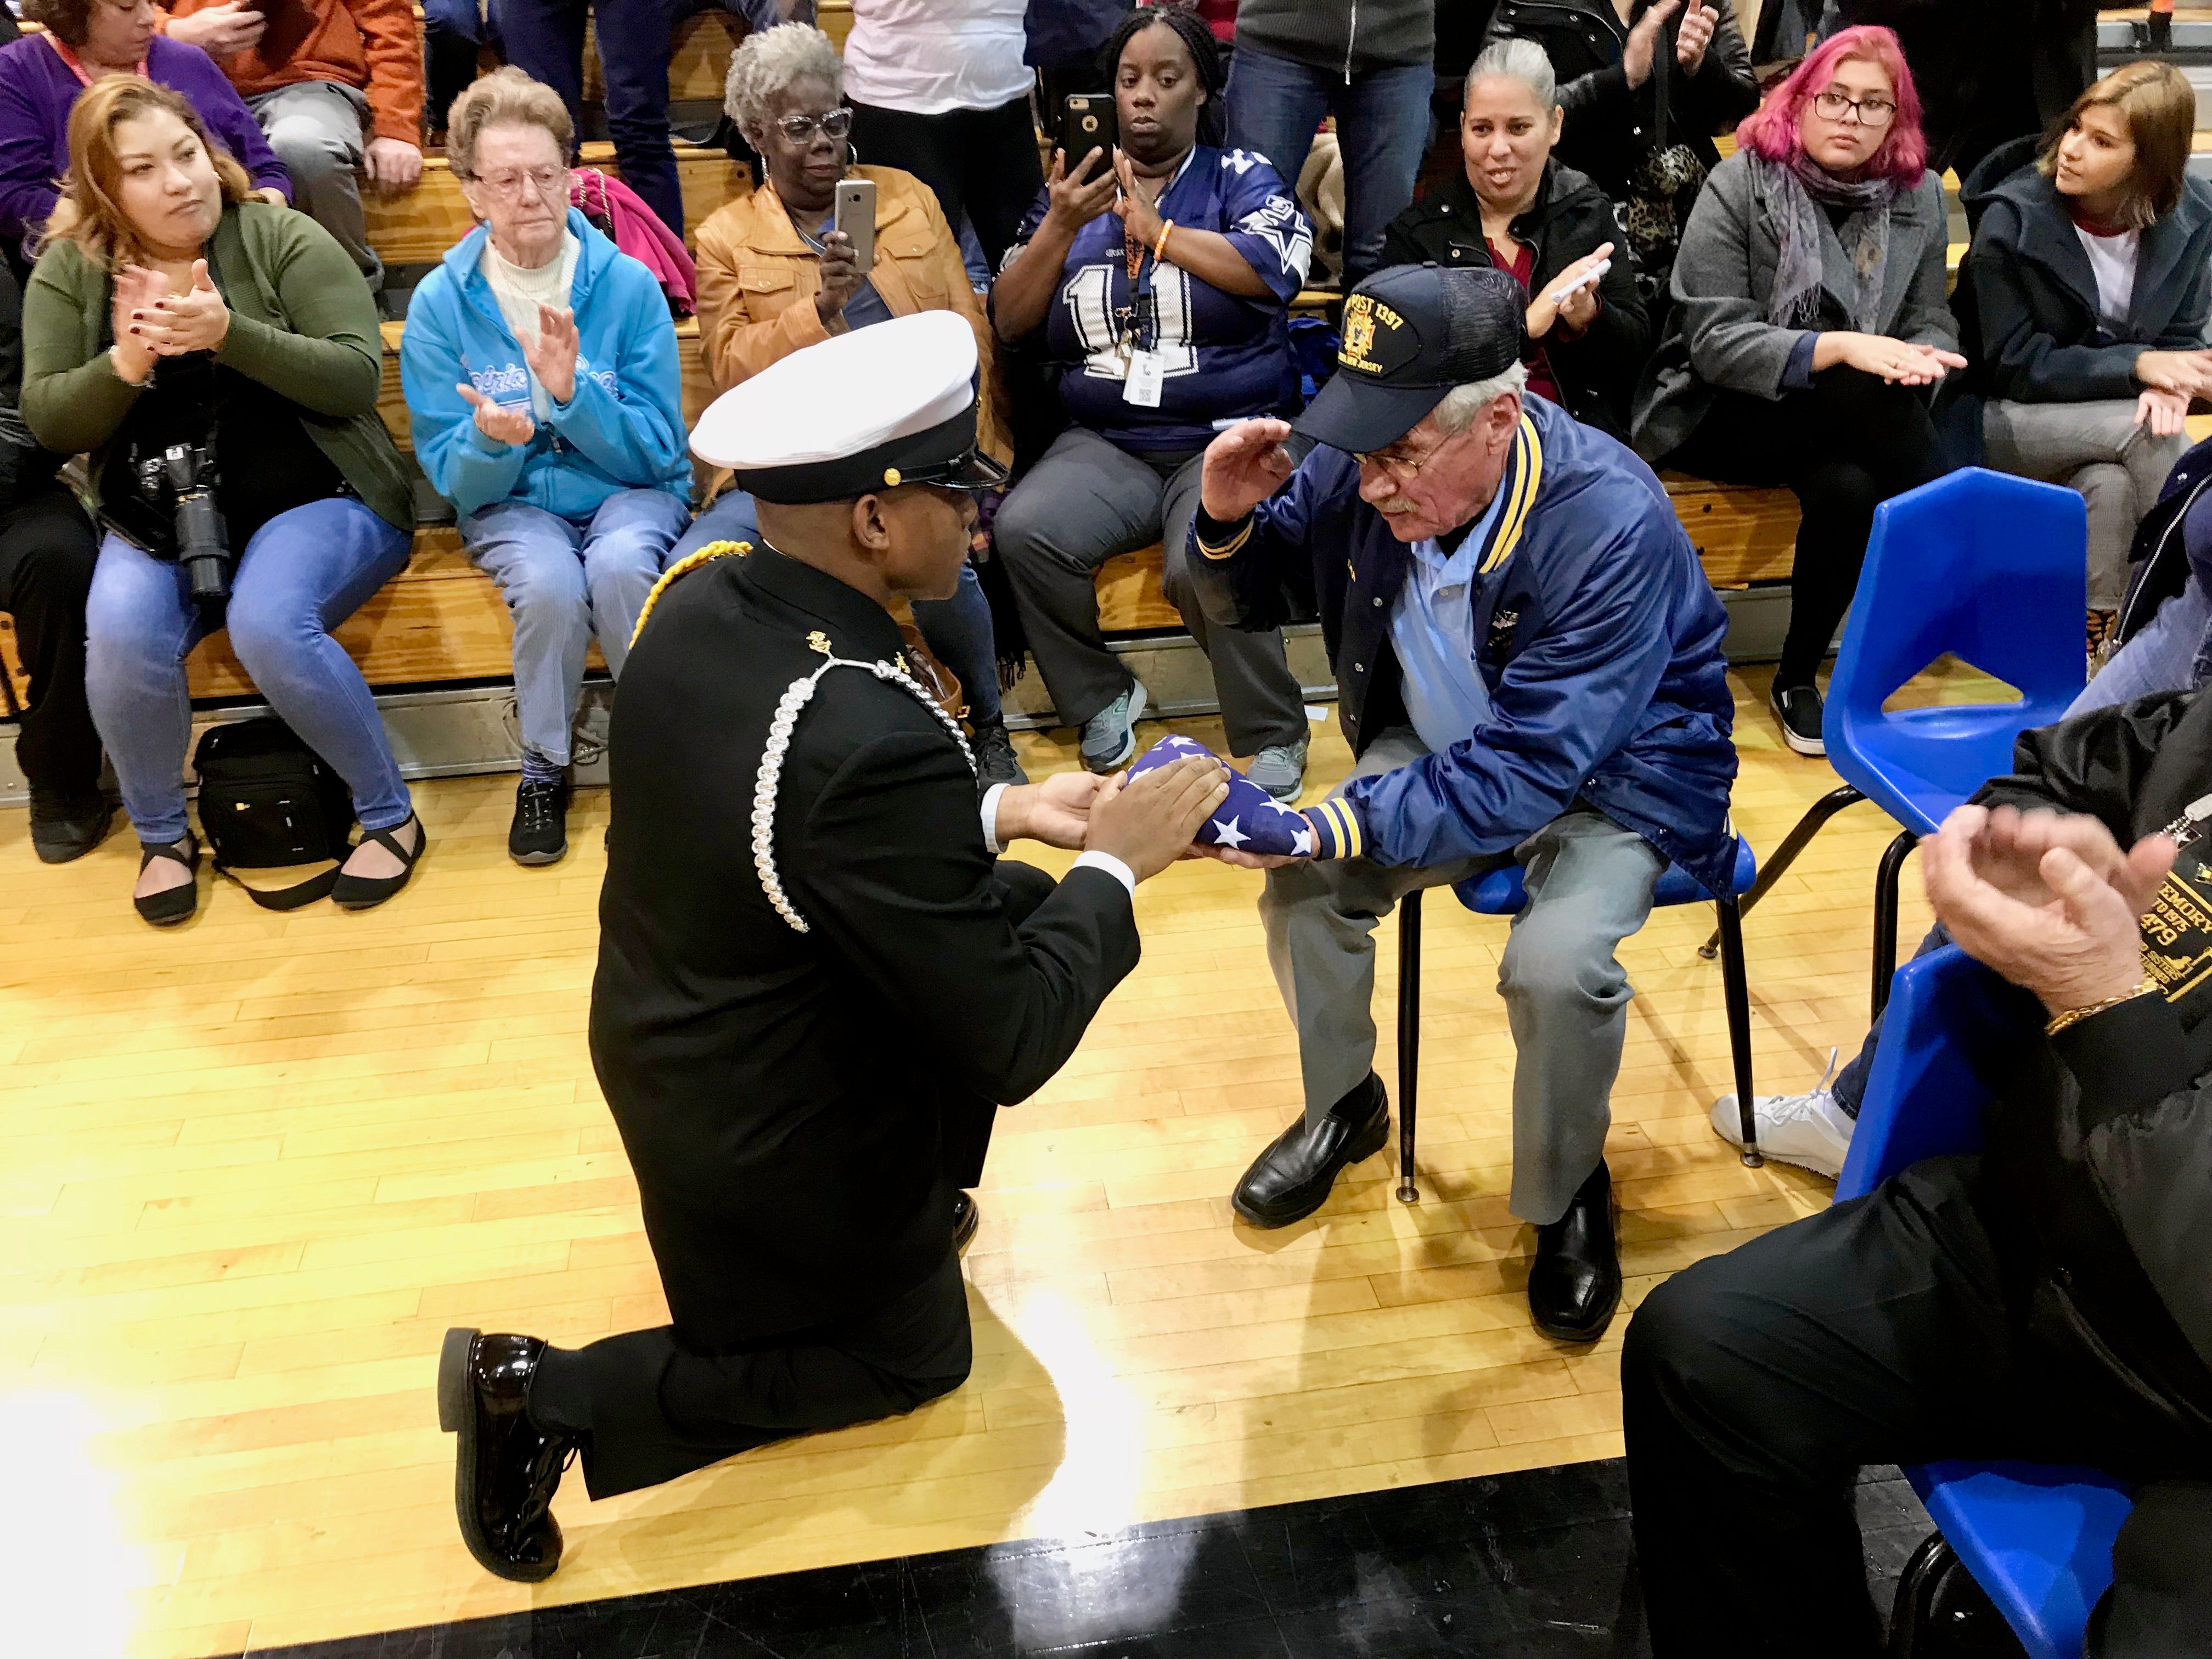 NJROTC1: Dennis Costello, commander of the Linden John Russell Wheeler VFW Post 1397, salutes Cadet Master Chief Petty Officer Maurice Faulk after being given a flag during the Old Glory Presentation at the Linden NJROTC Veterans Day ceremony.